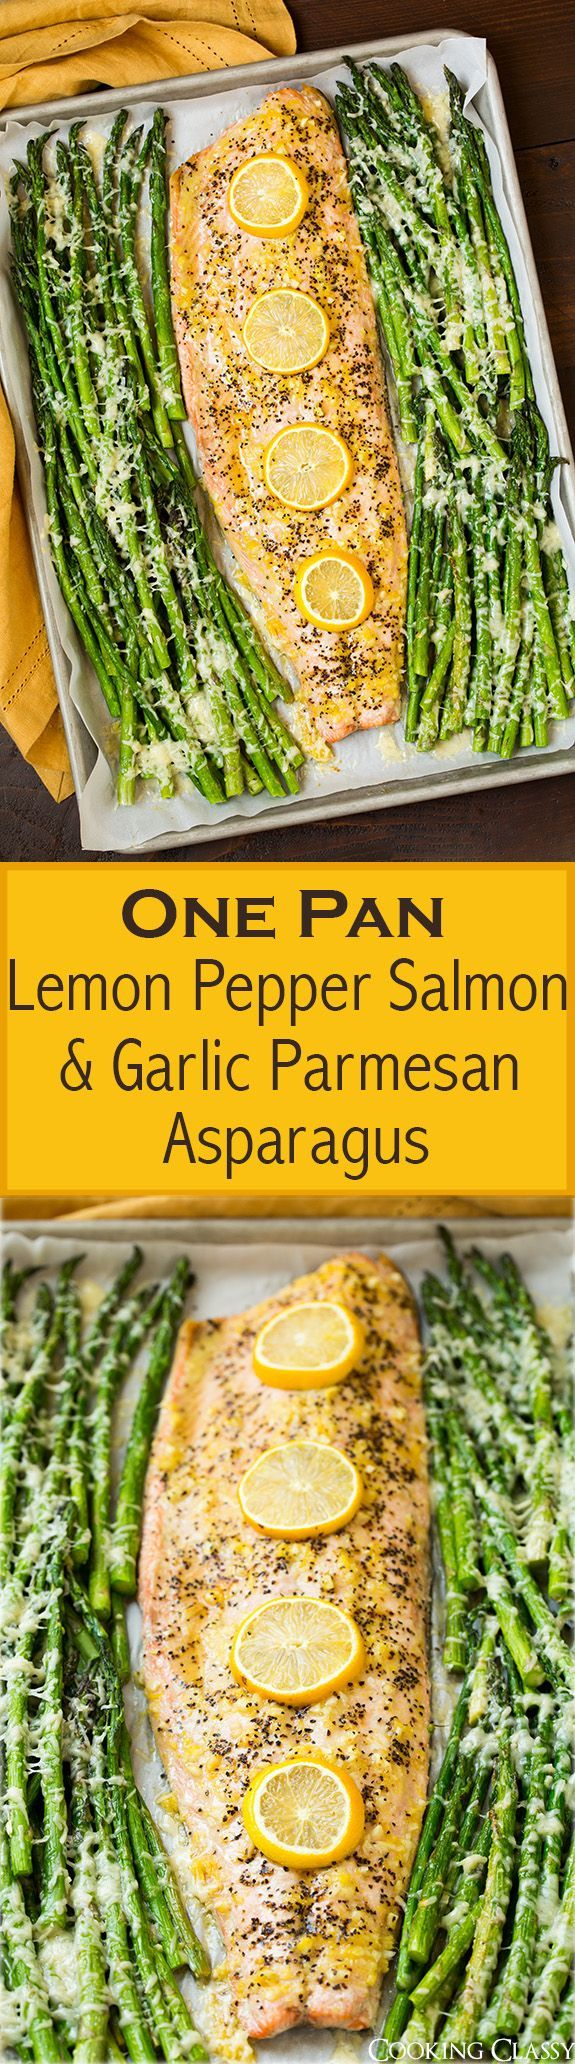 One Pan Roasted Lemon Pepper Salmon and Garlic Parmesan Asparagus - This is so easy to make and the flavor combo of the two is delicious!